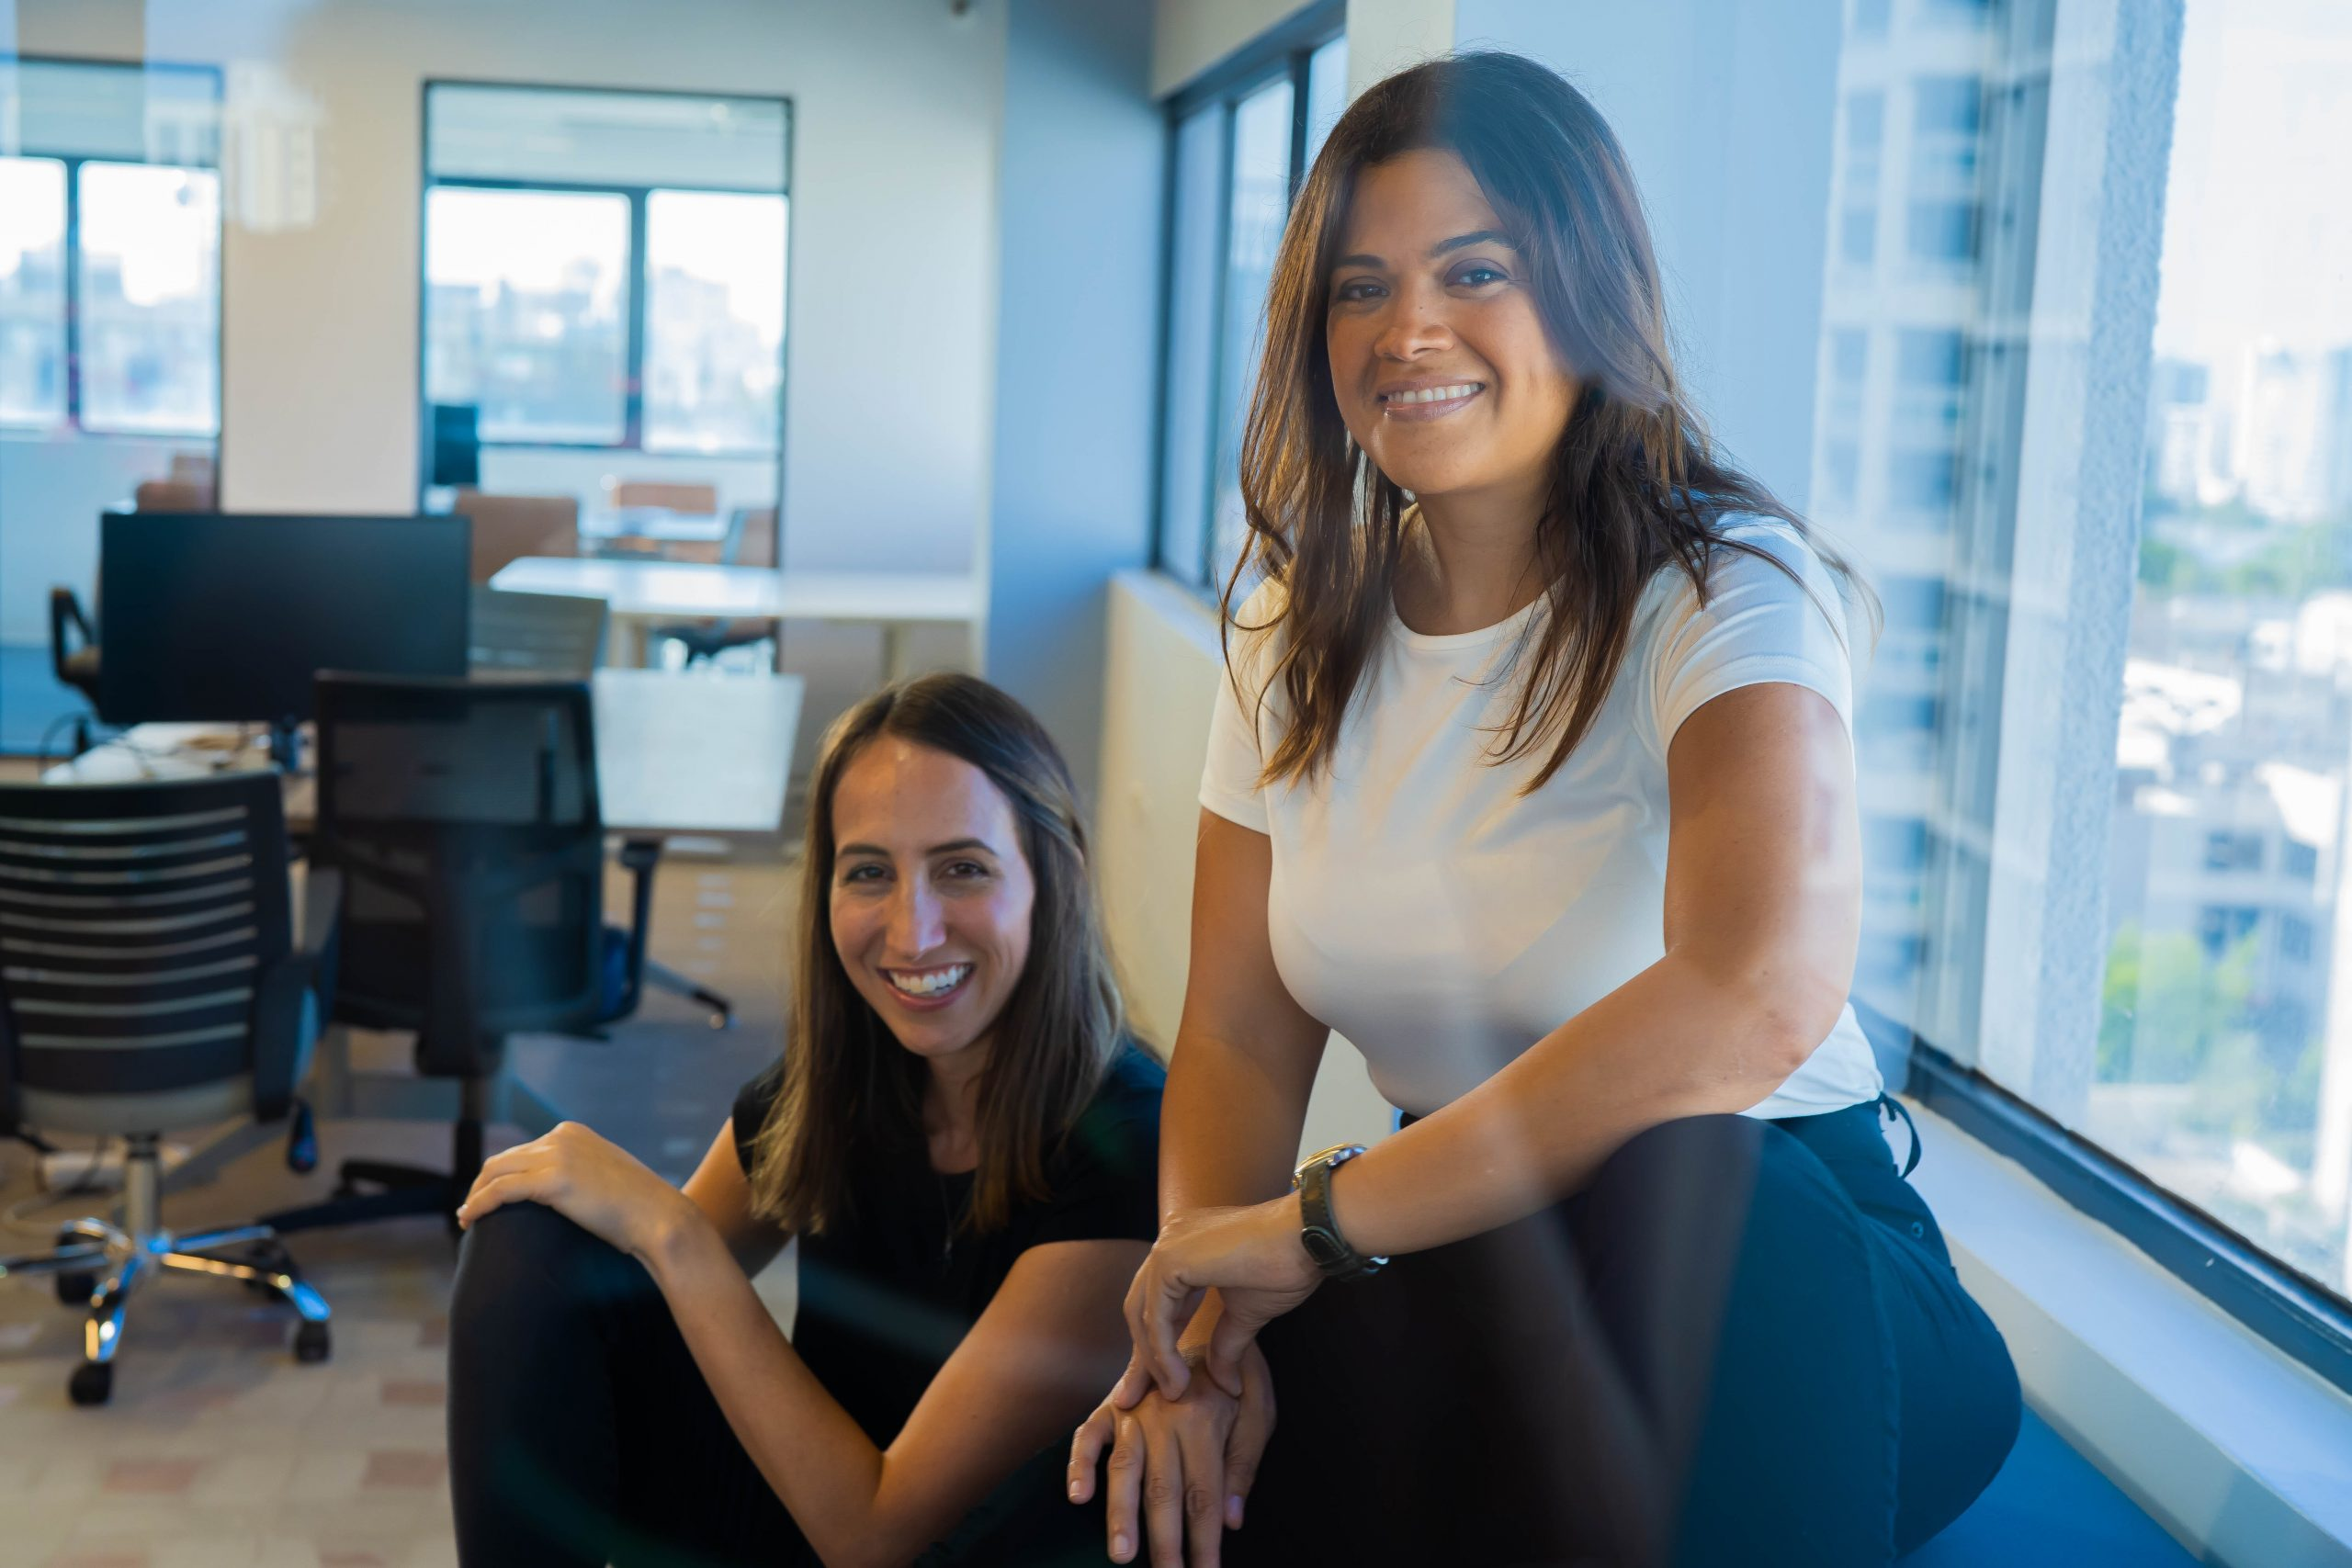 the two women founders of abartys health Dolma and Lauren